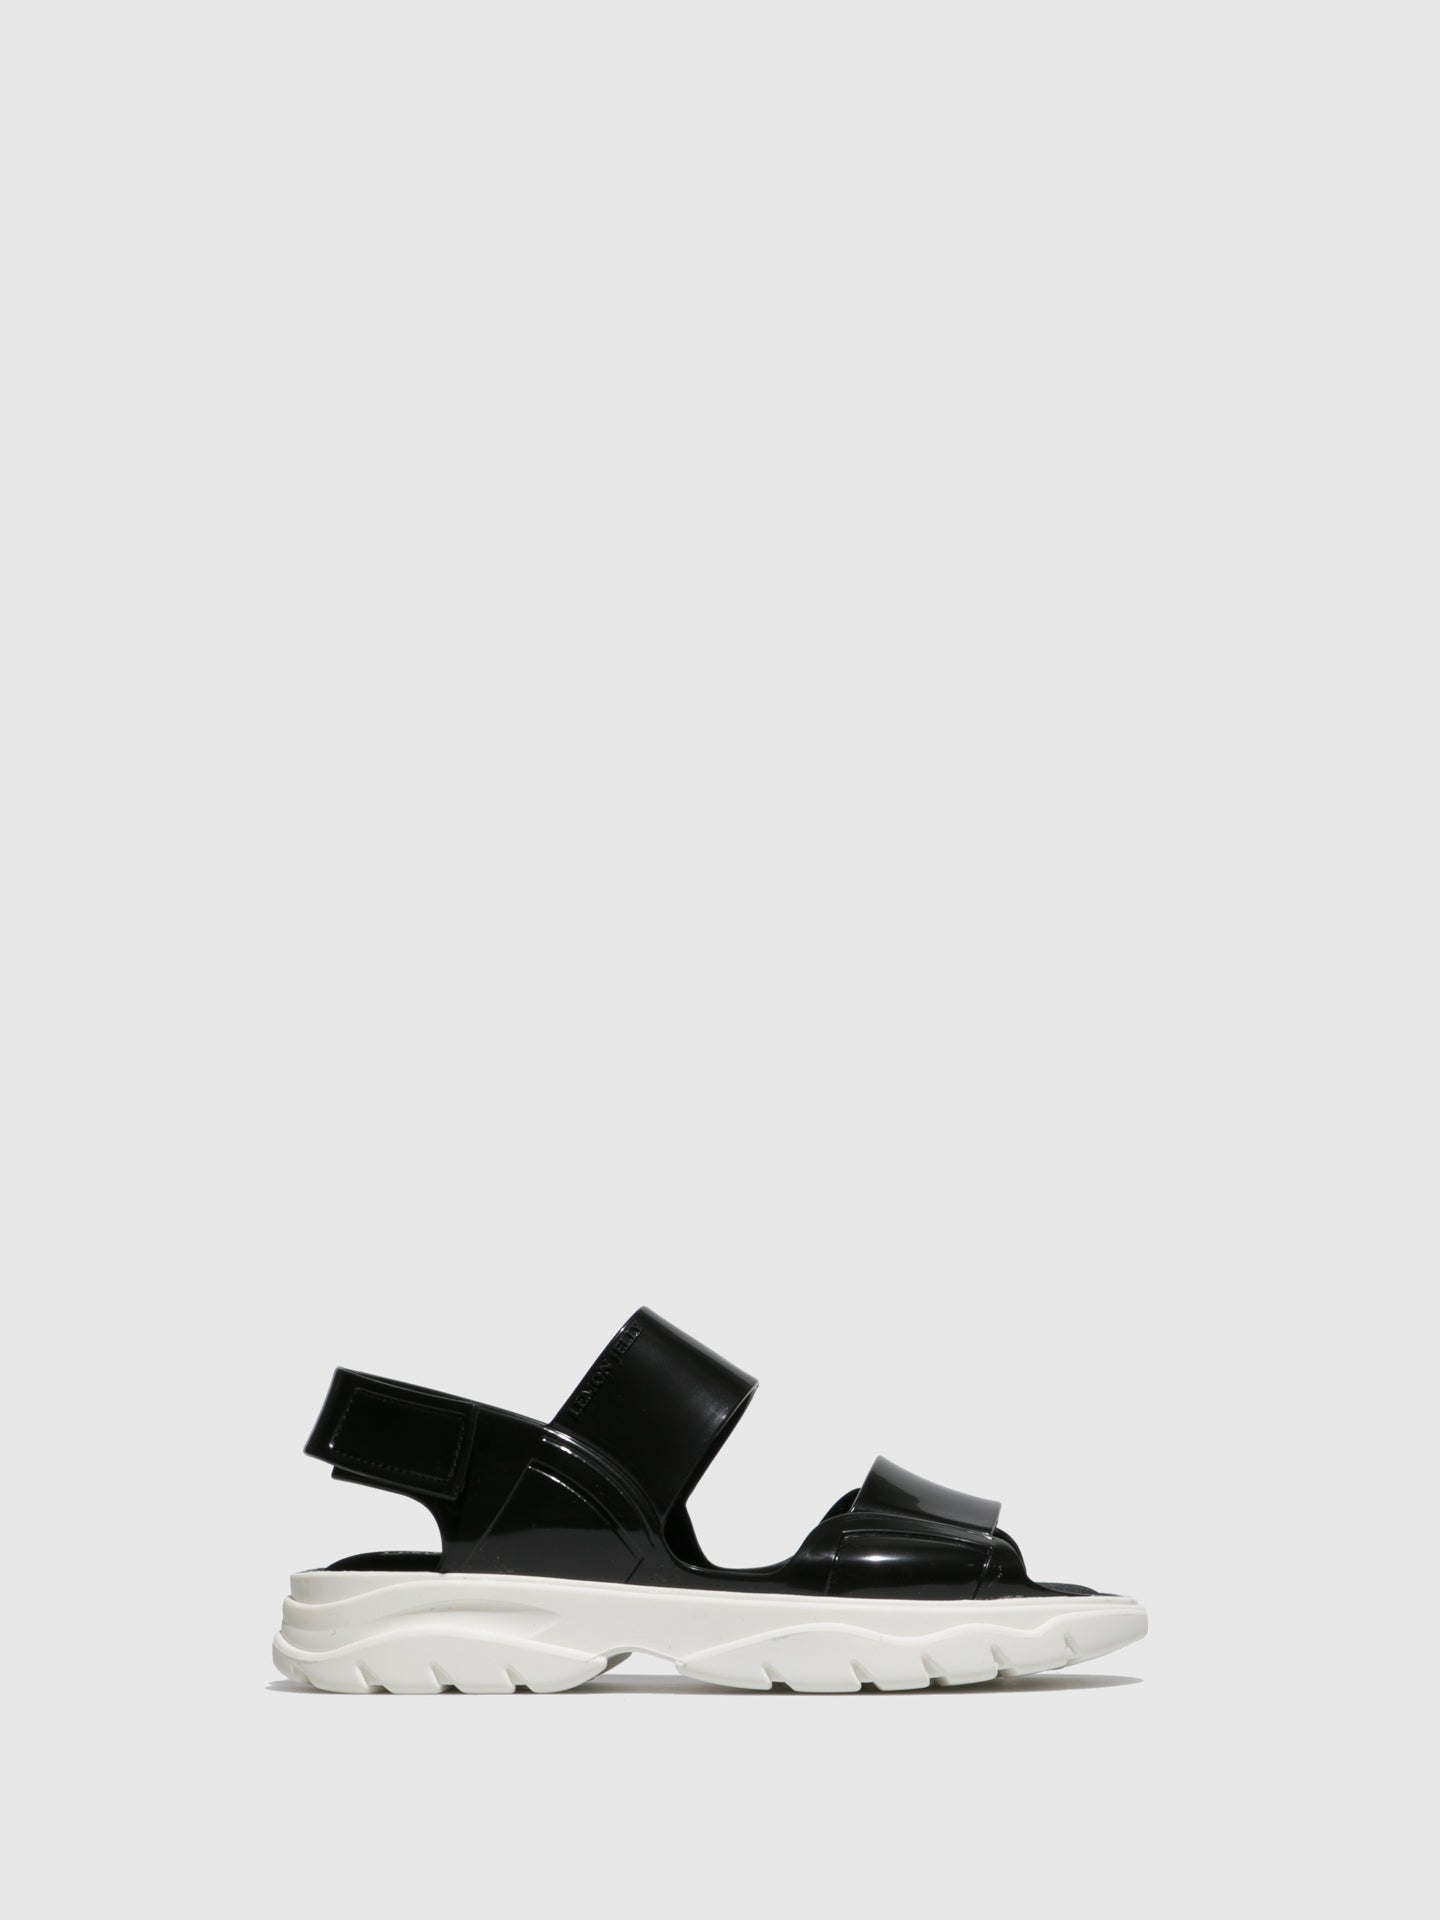 Lemon Jelly Black Rubber Sandals